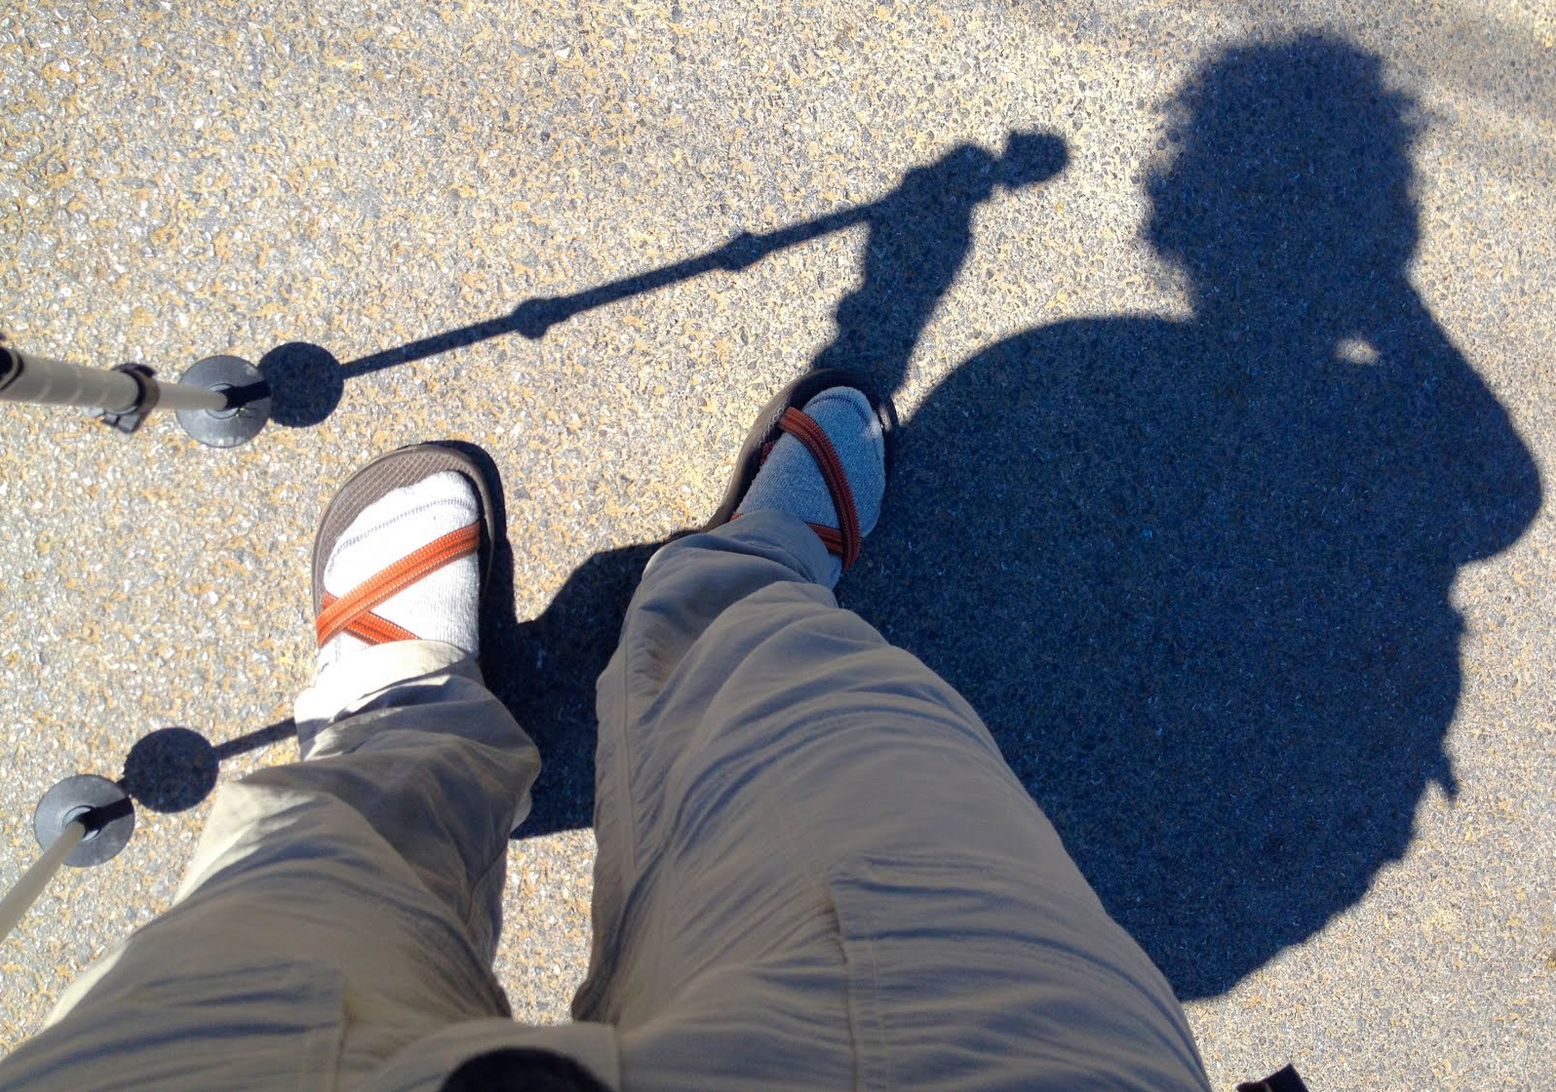 And we (I) stop complaining about all my blisters, and I switch back and forth from bare feet to socks, in my sandals.